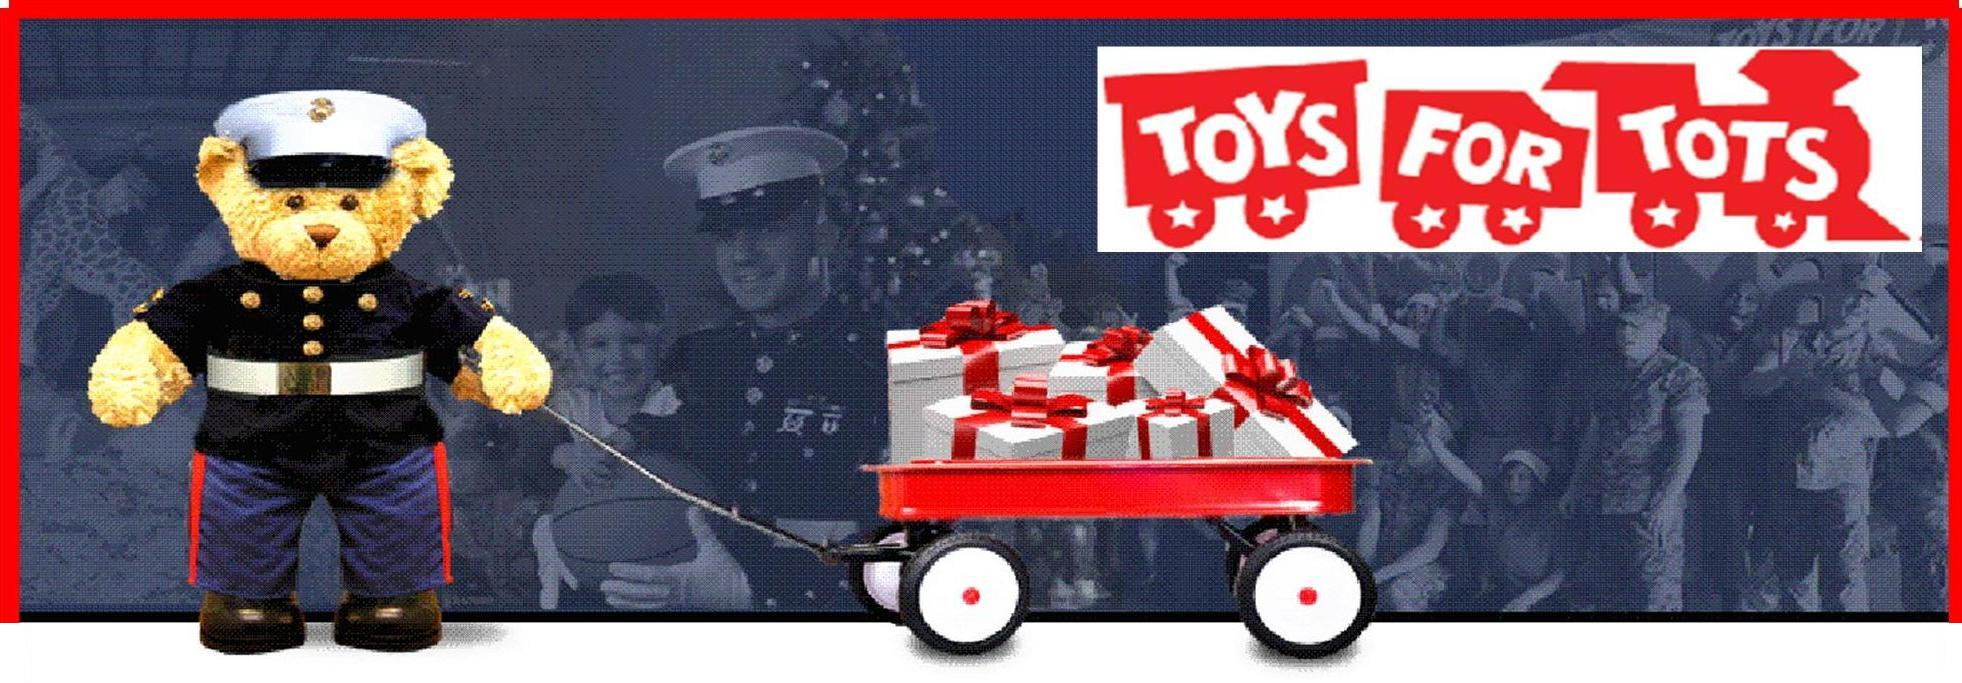 Toys For Tots Marine Corps : Toys for tots bremerton olympic peninsula council navy